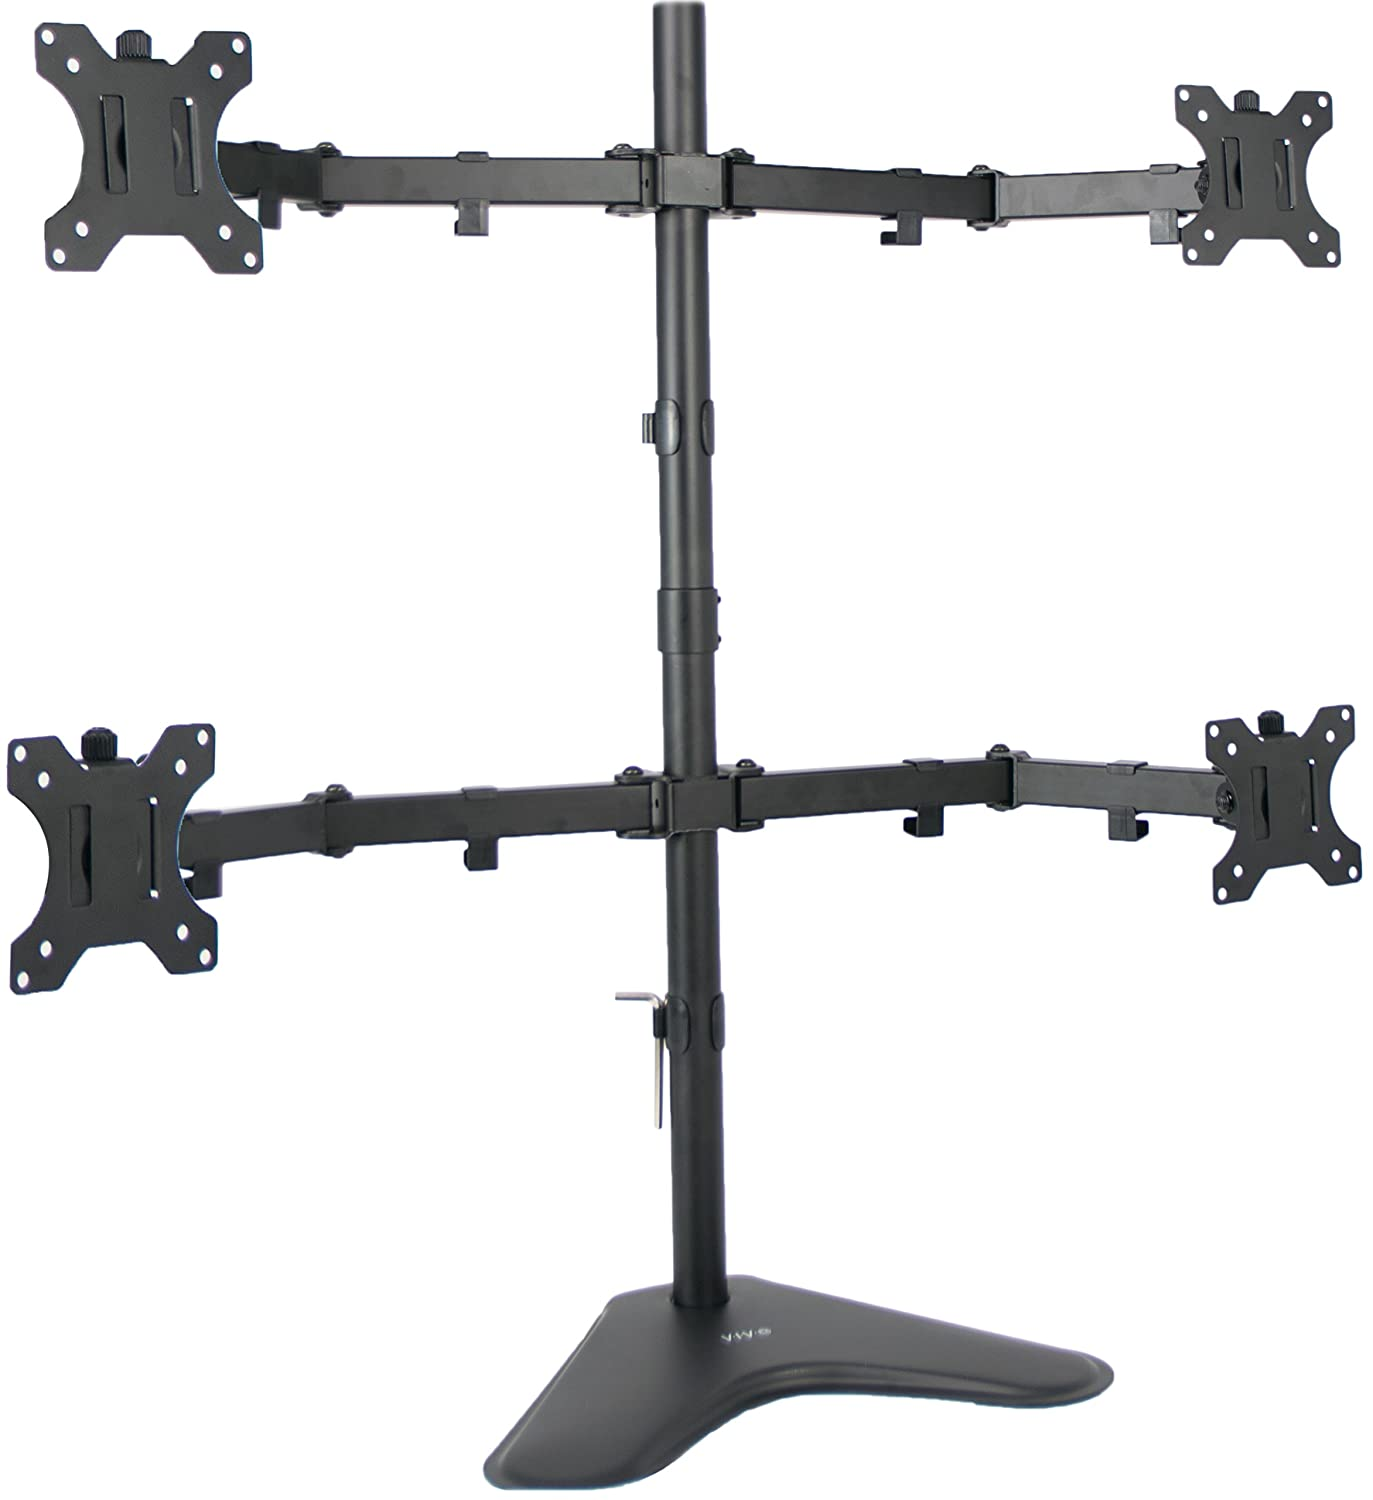 VIVO Quad LCD Computer Monitor Mount Free Standing Heavy Duty Desk Stand Fully Adjustable holds 4 Four Screens up to 30 (STAND-V004F)